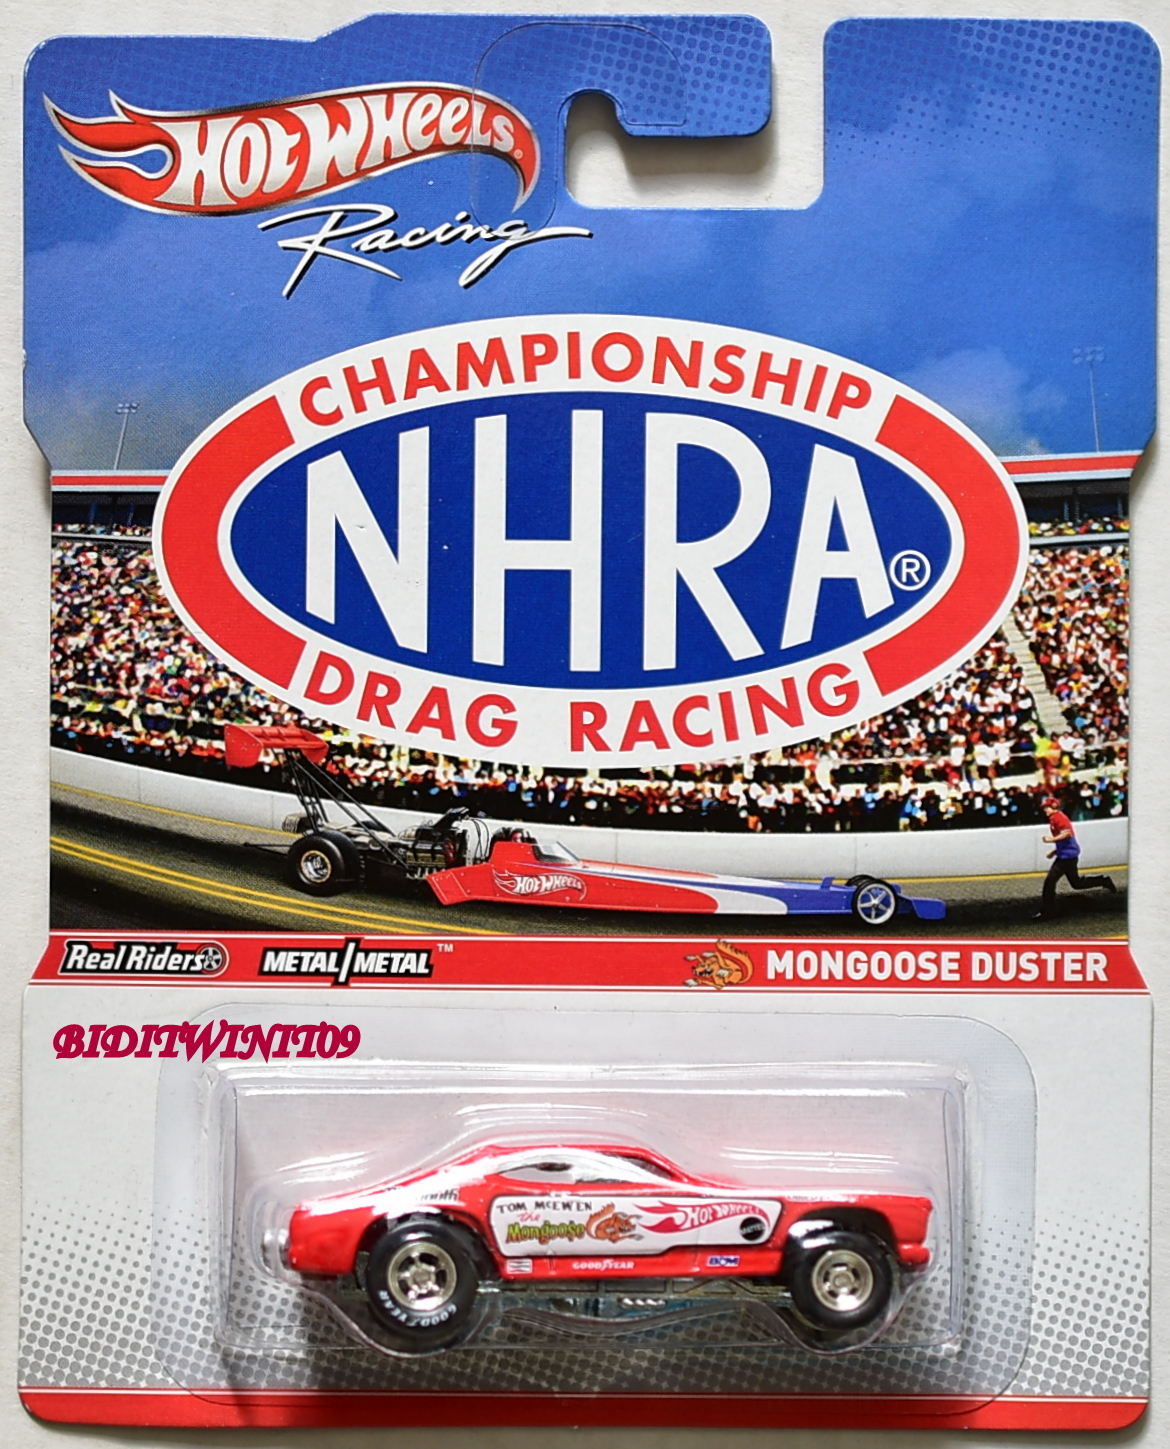 HOT WHEELS 2012 RACING NHRA CHAMPIONSHIP DRAG RACING MONGOOSE DUSTER E+